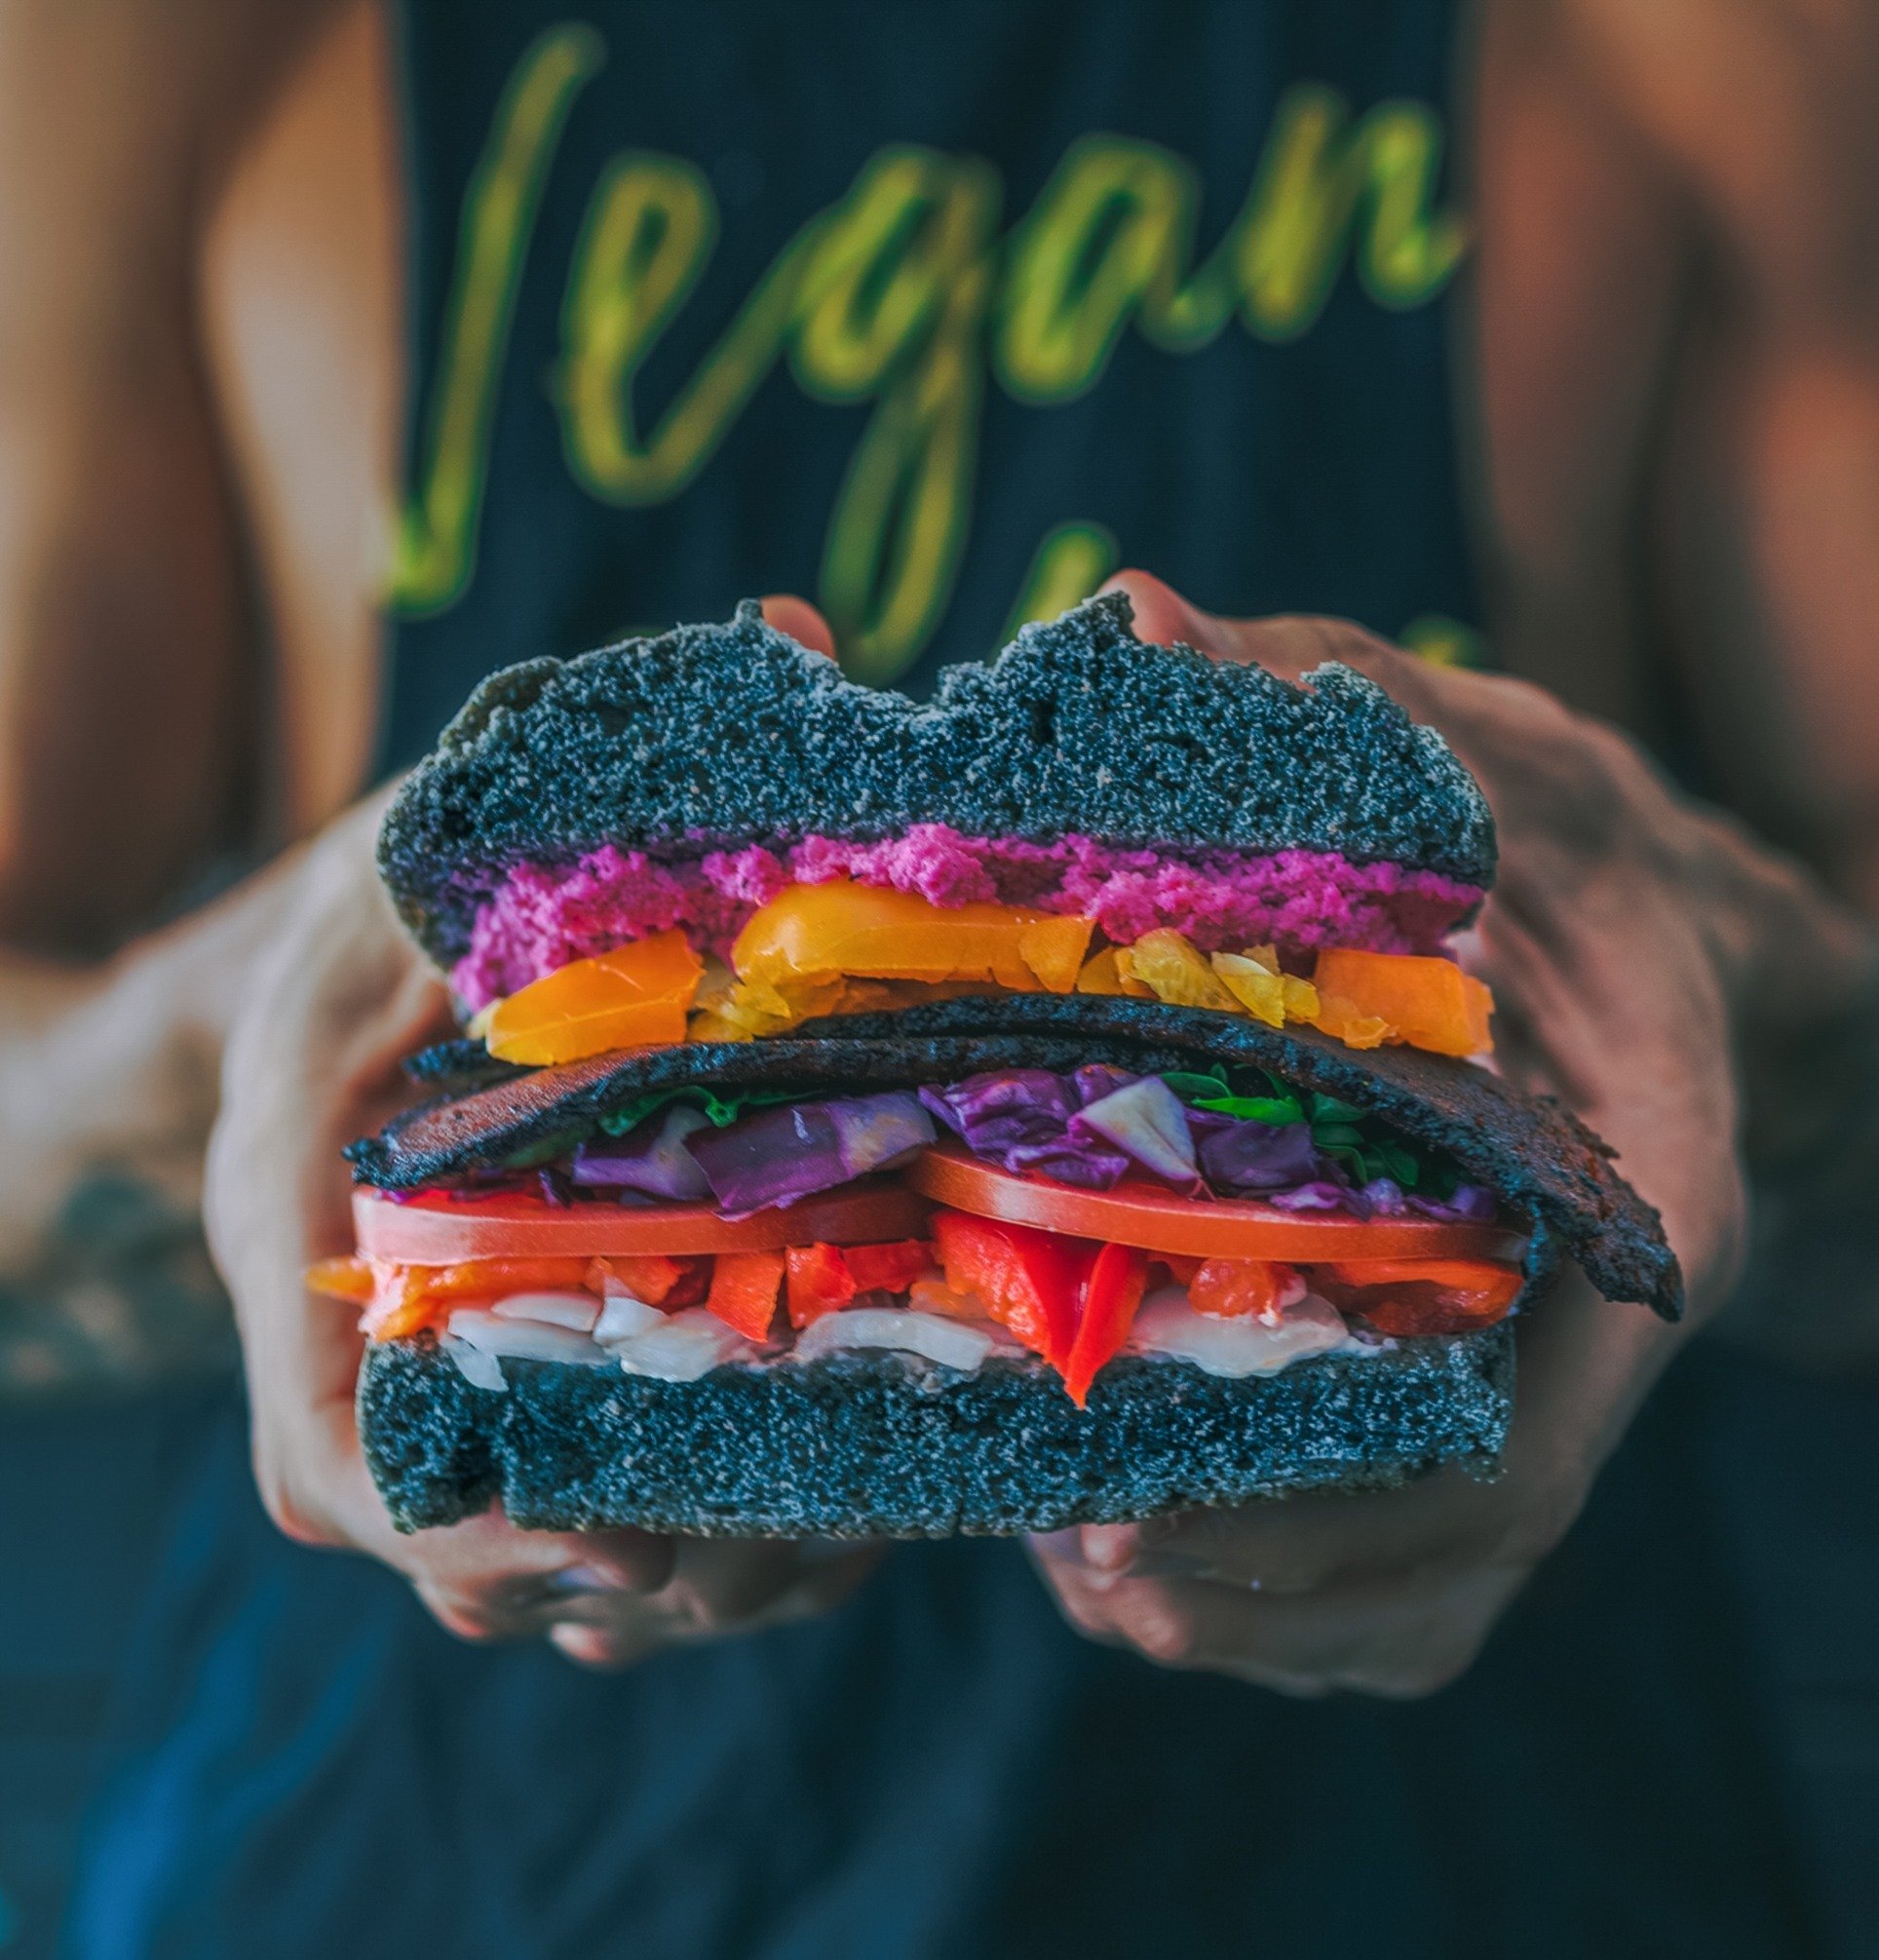 Vegan%2520Black%2520LT%2520Sandwich_edit